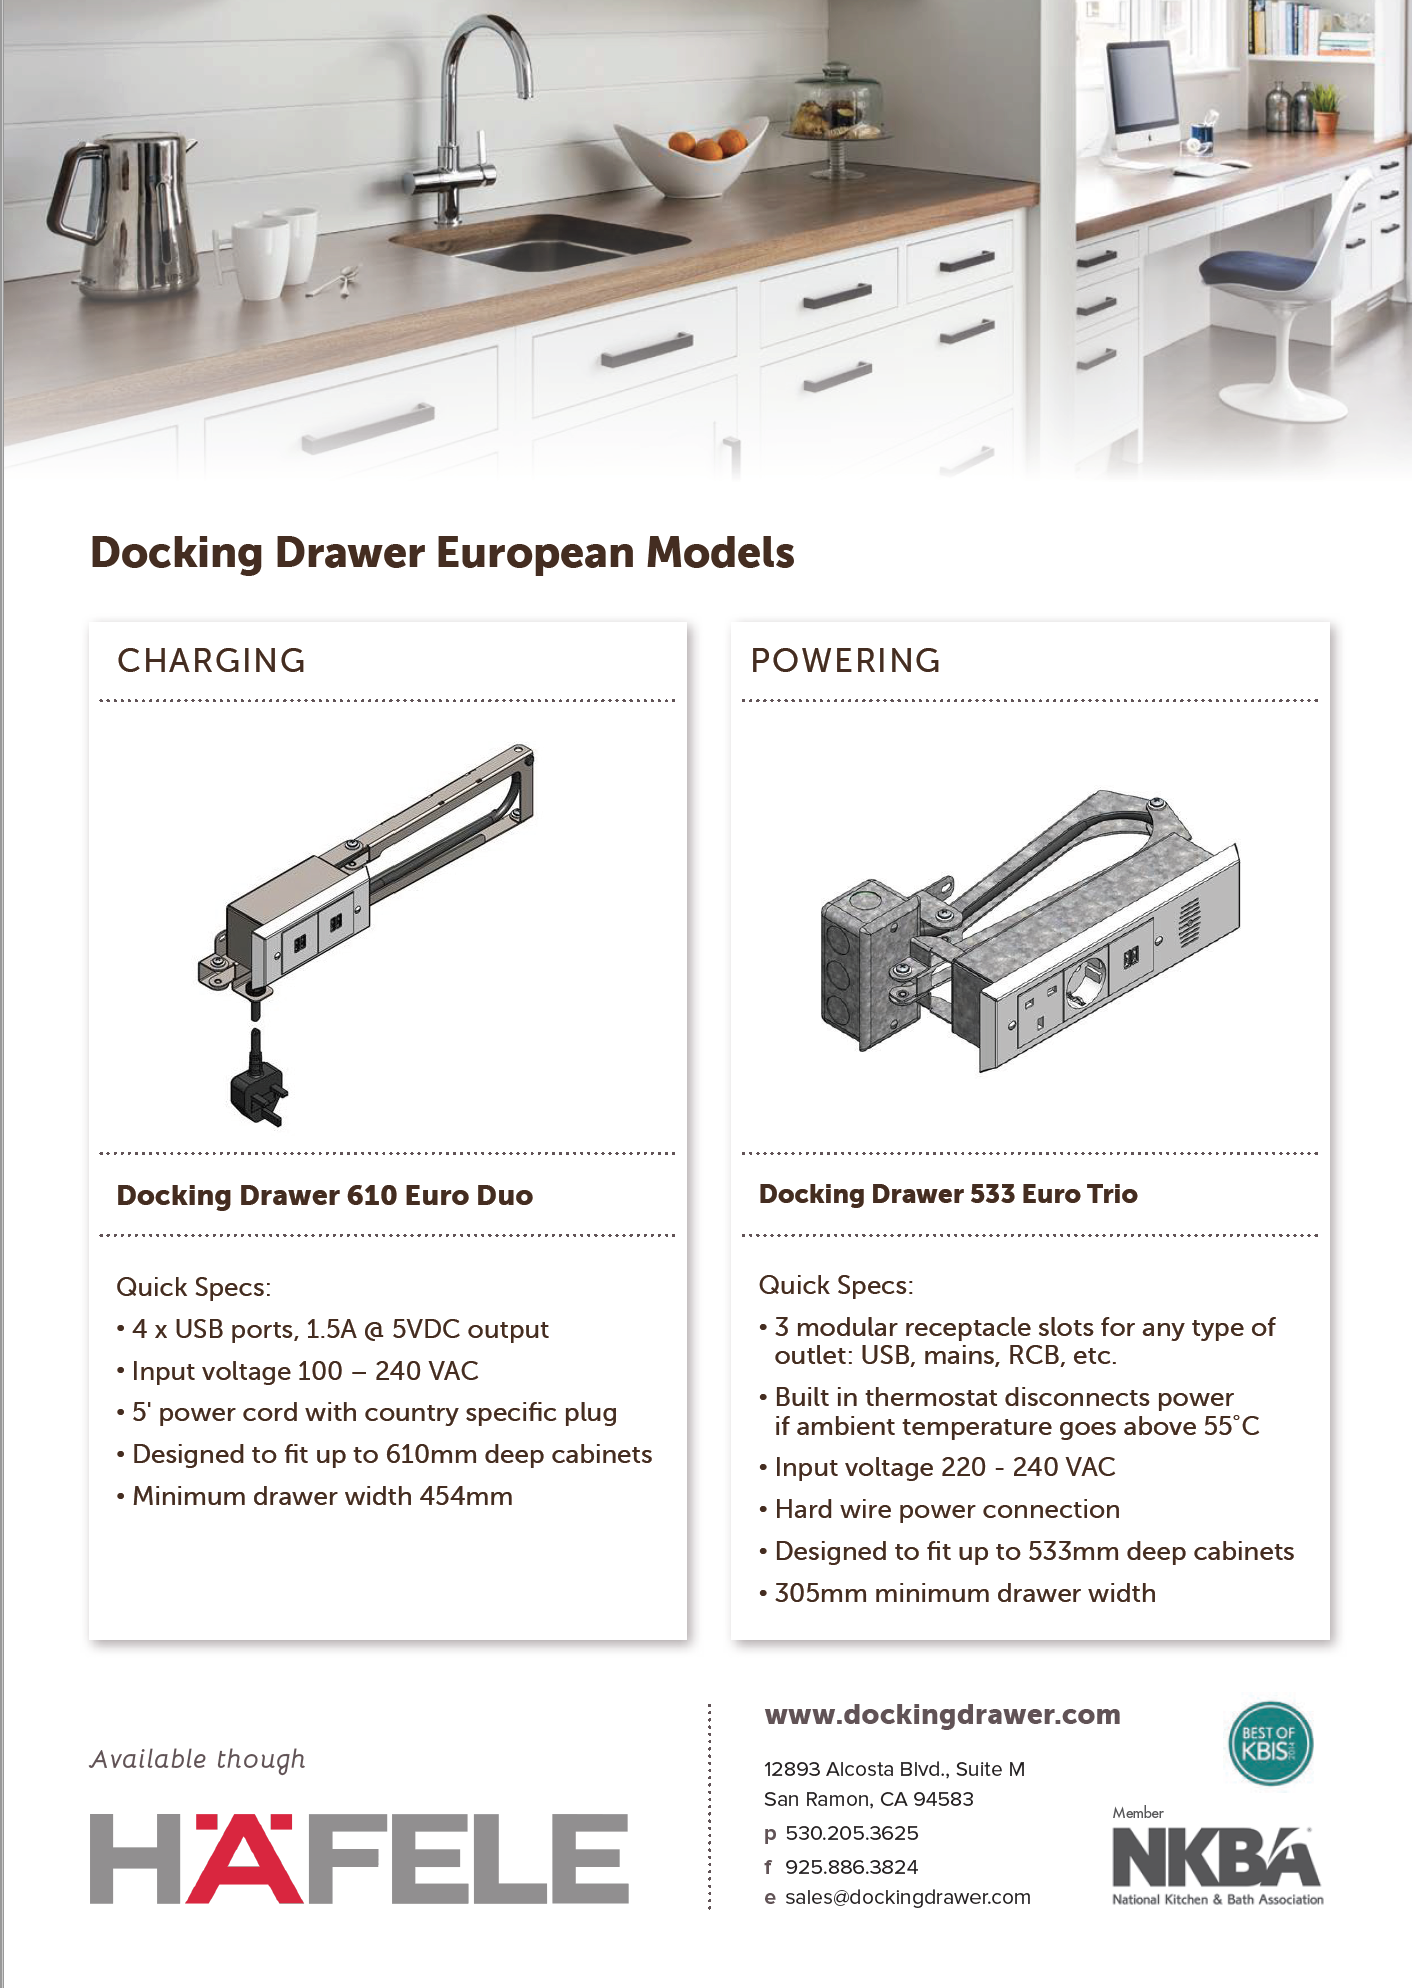 New European Outlets Are Coming to Docking Drawer